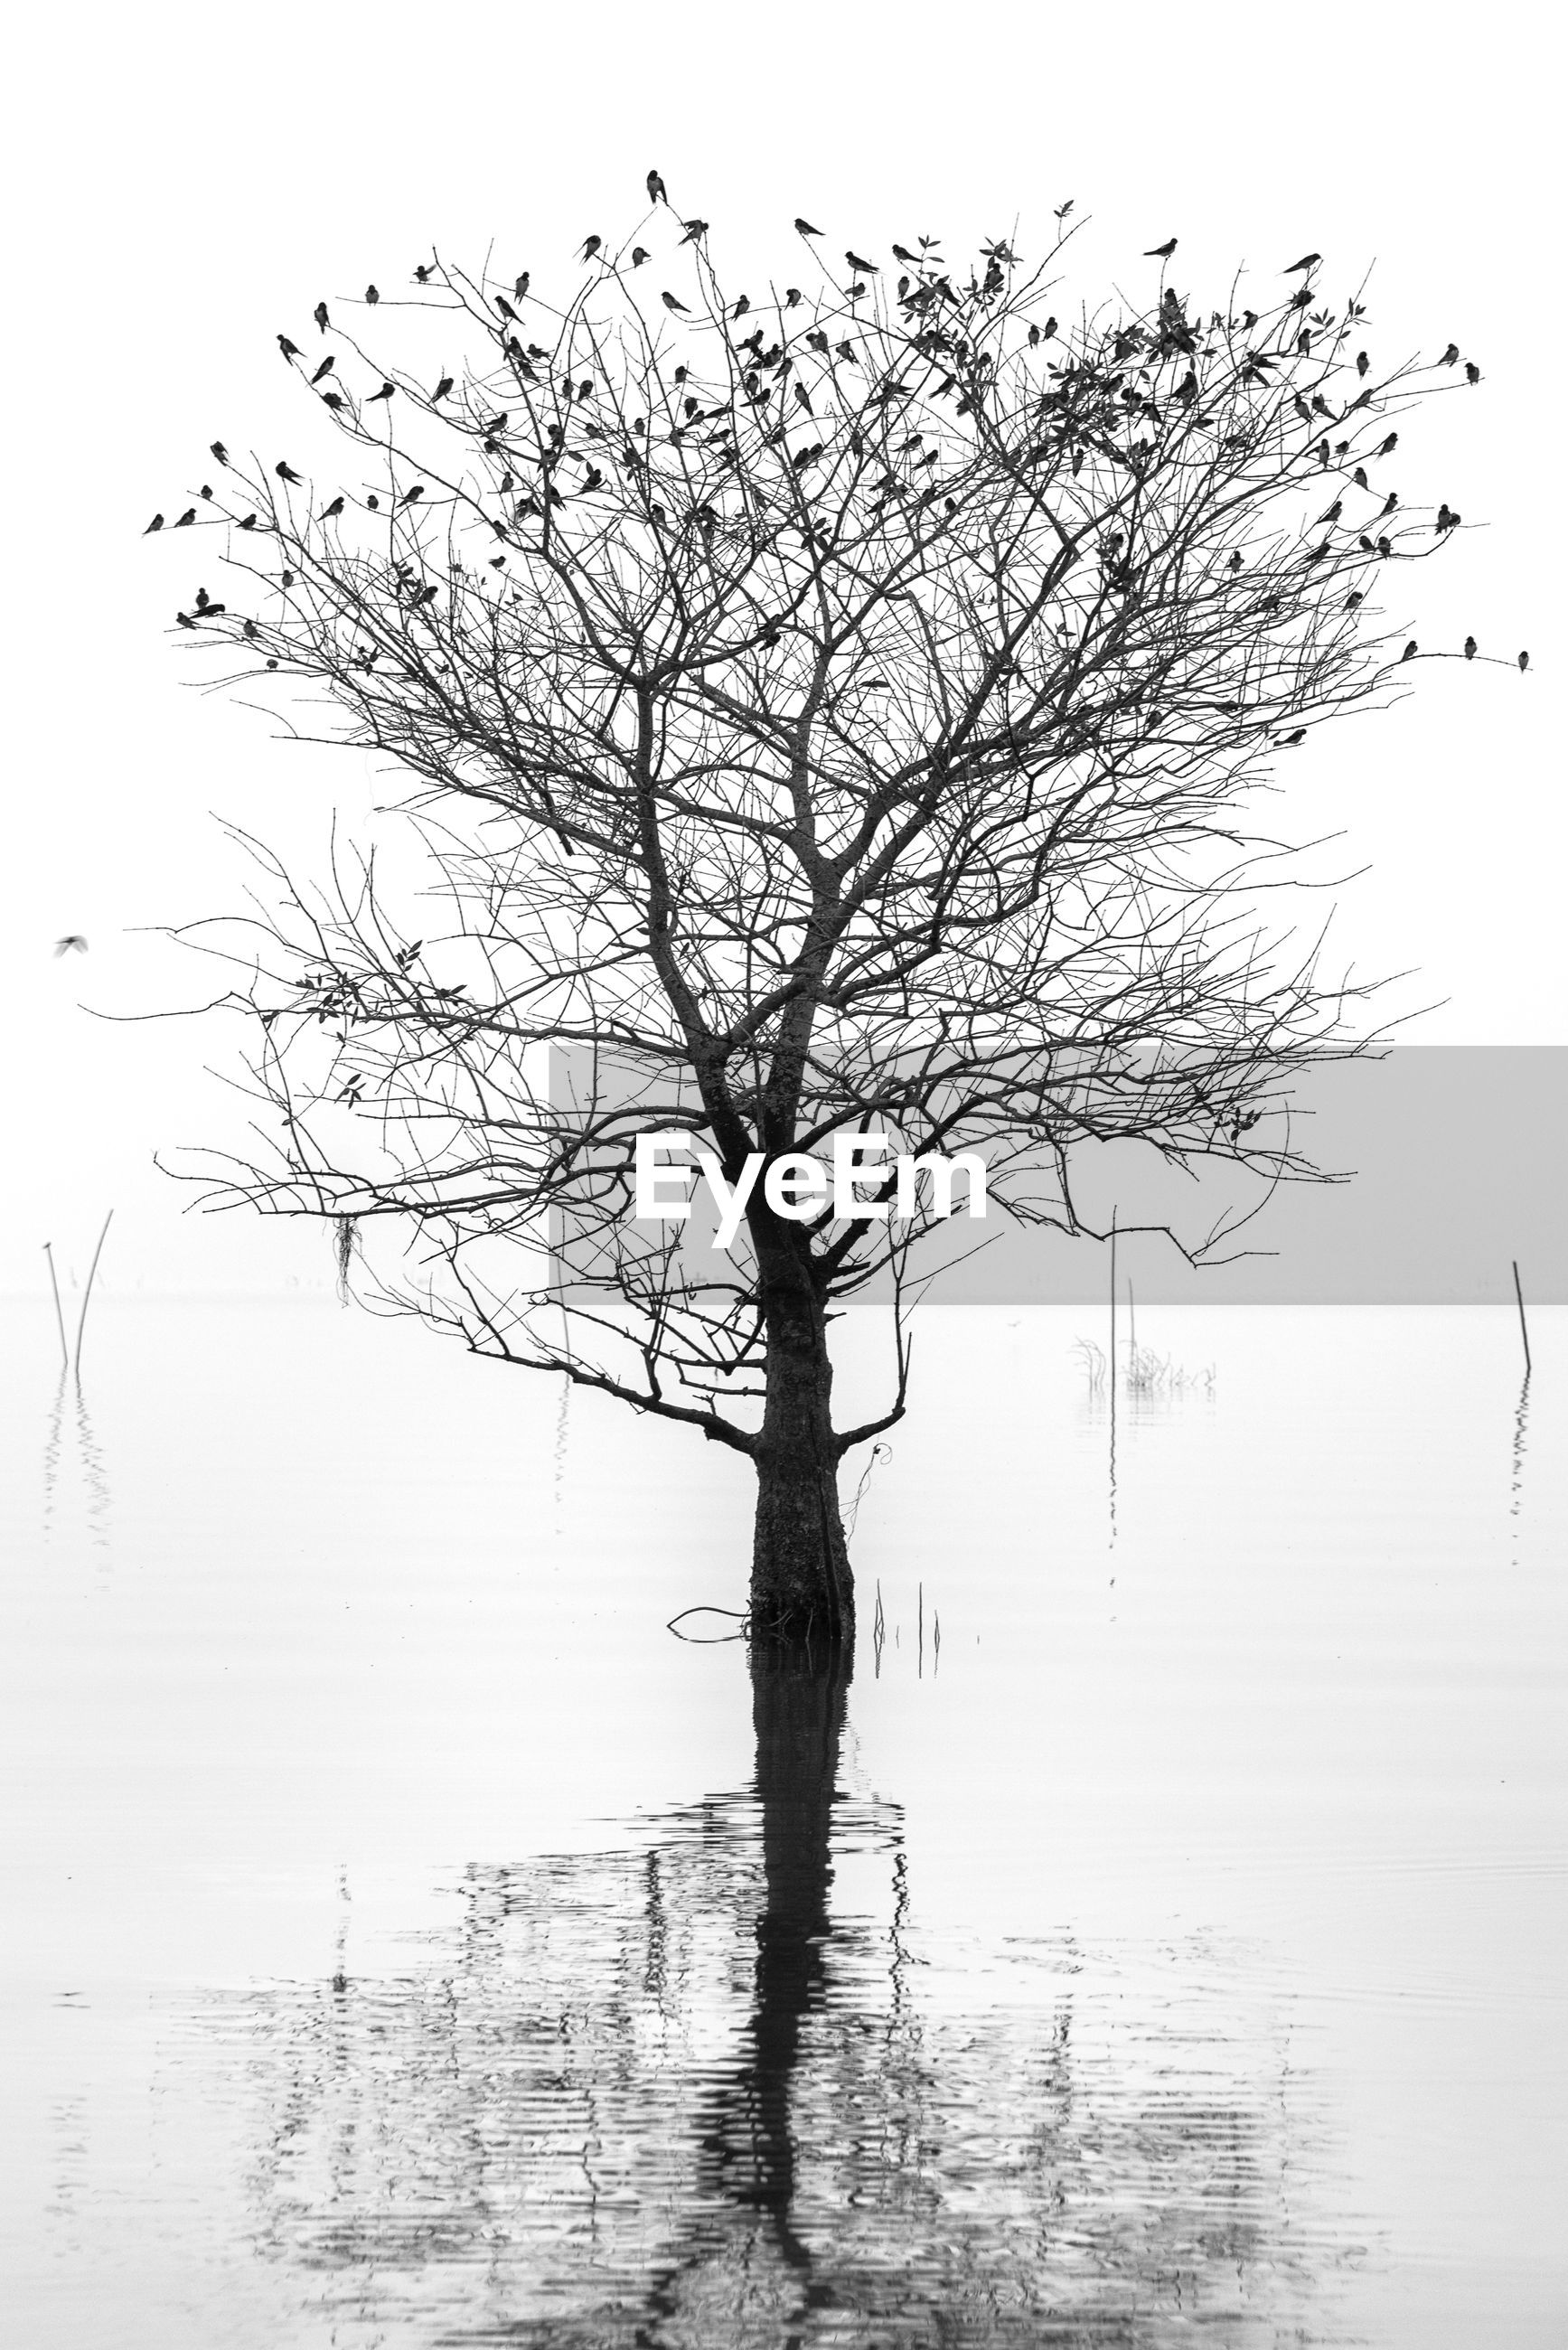 BARE TREE BY LAKE AGAINST SKY